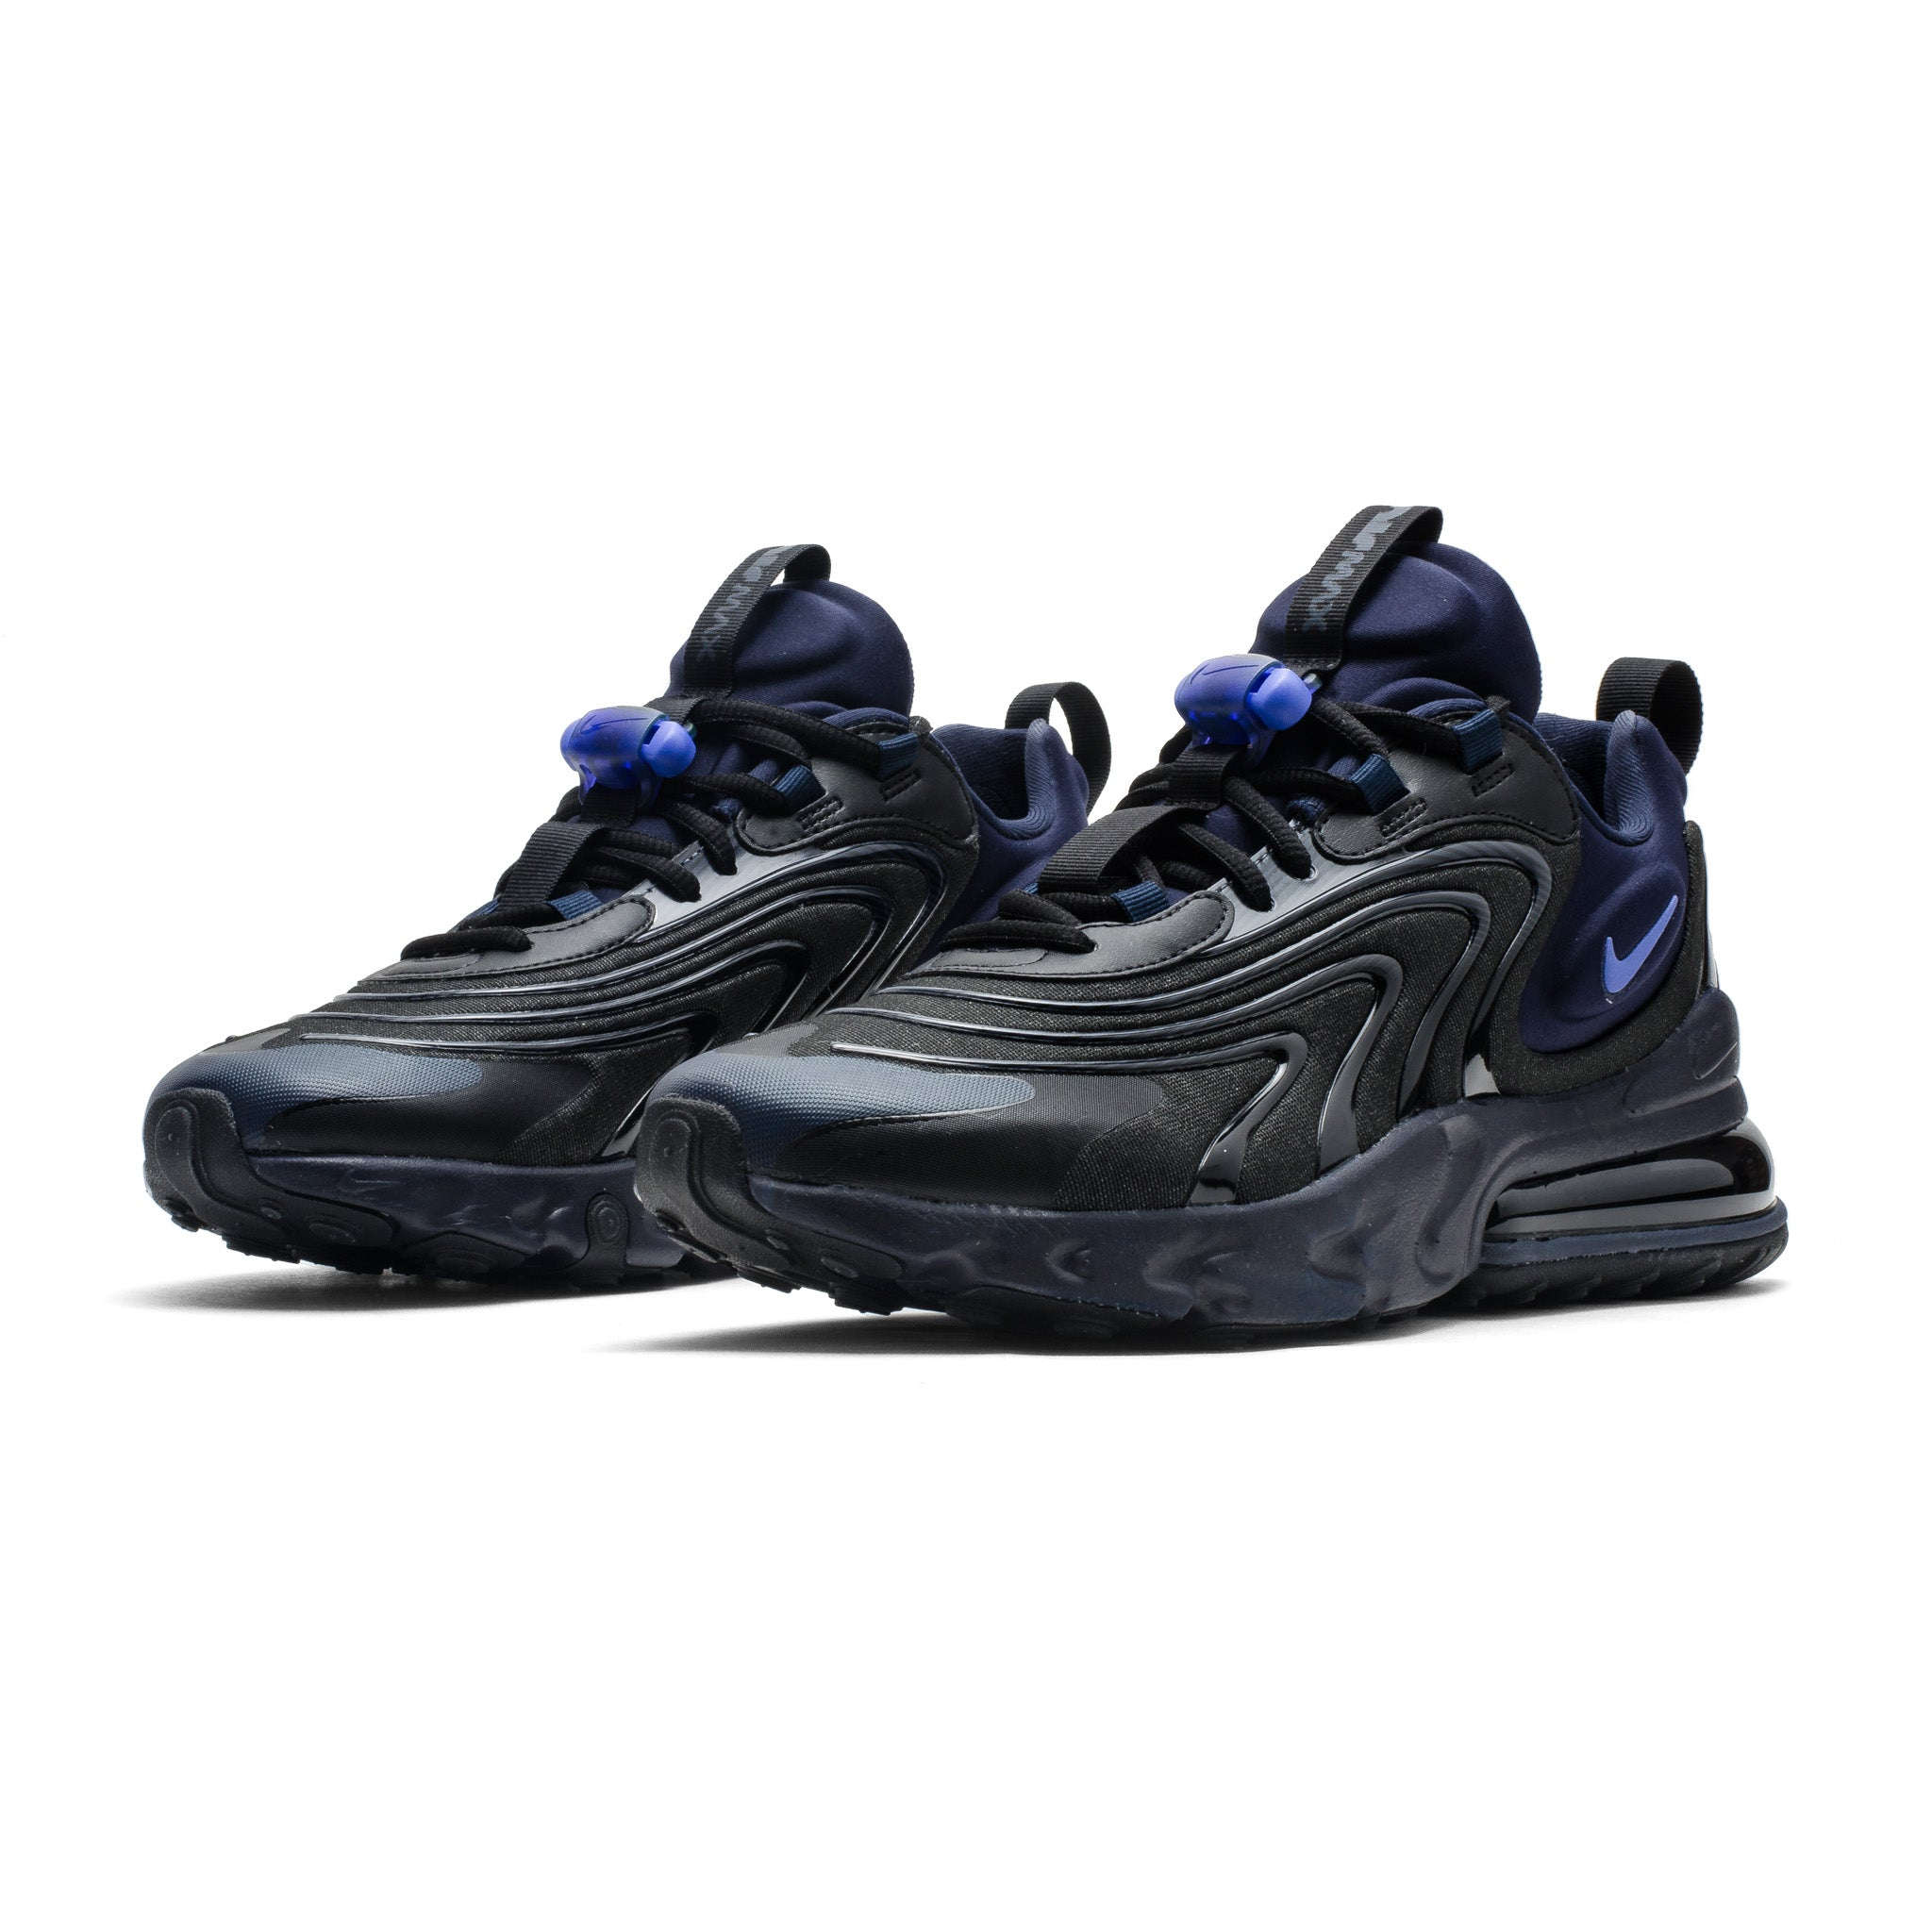 Air Max 270 React ENG CD0113-001 Black